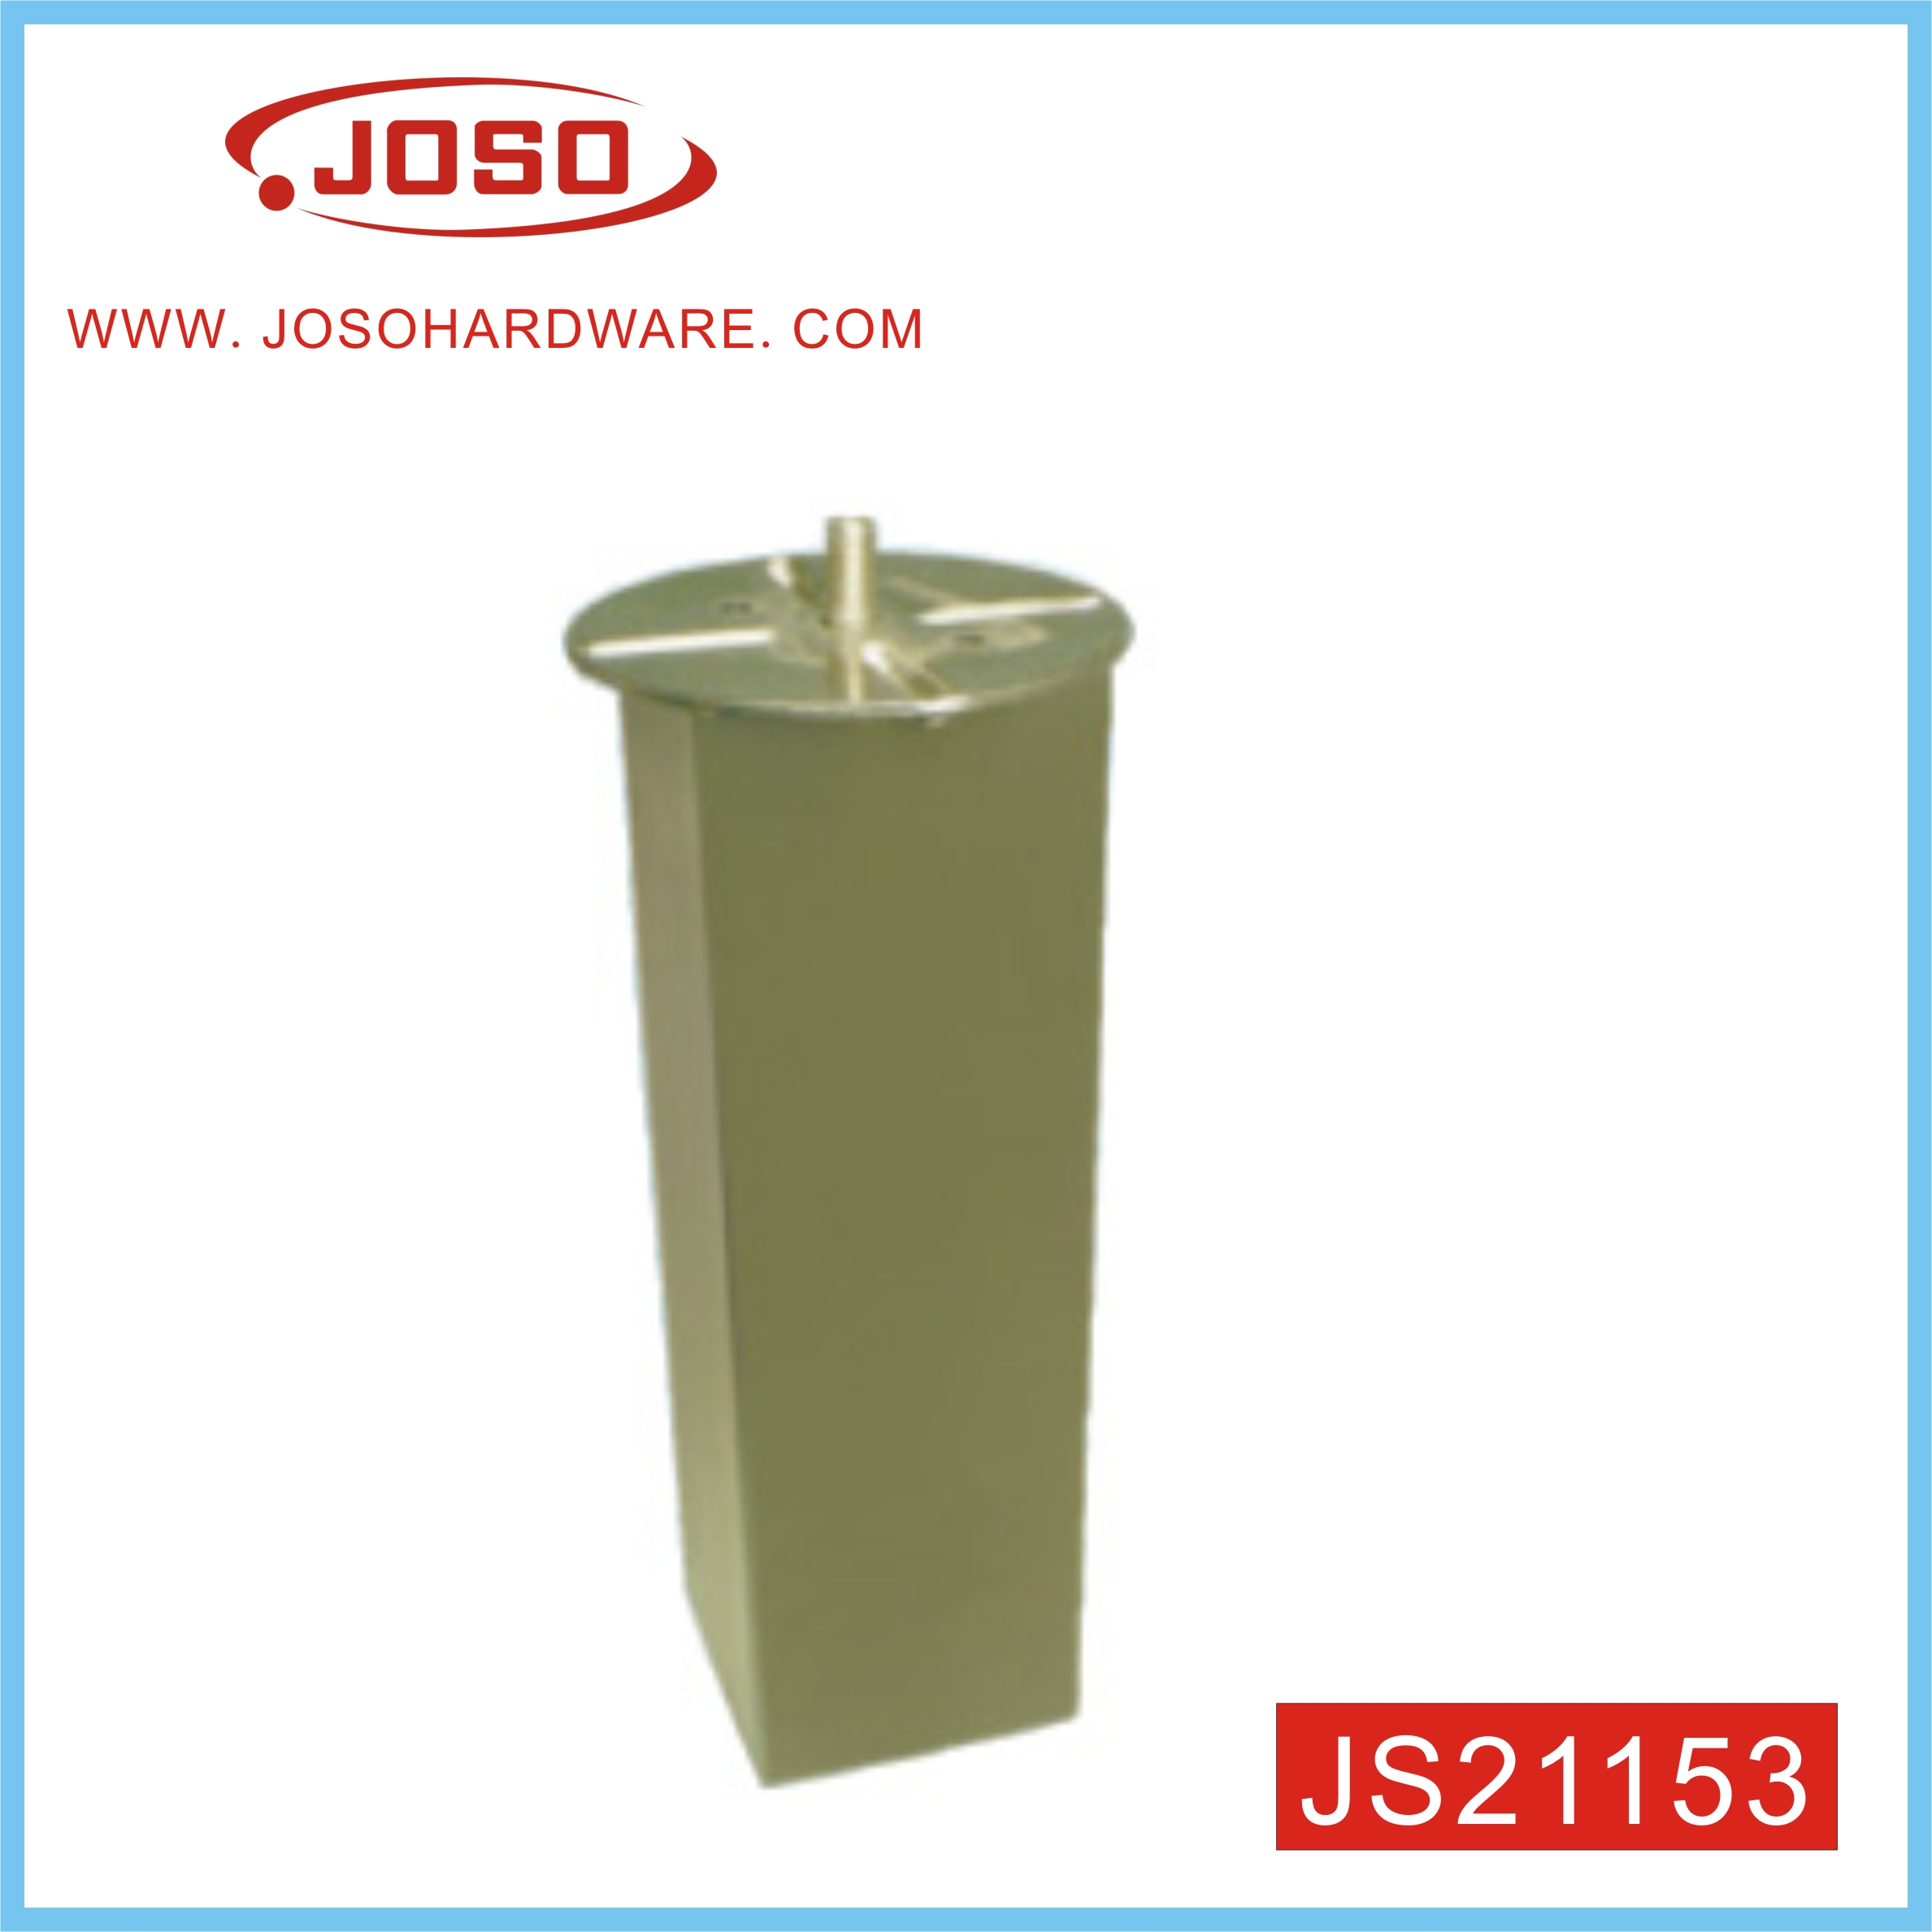 JS21153 Gold Color Plated Furniture Hardware Of Table Leg